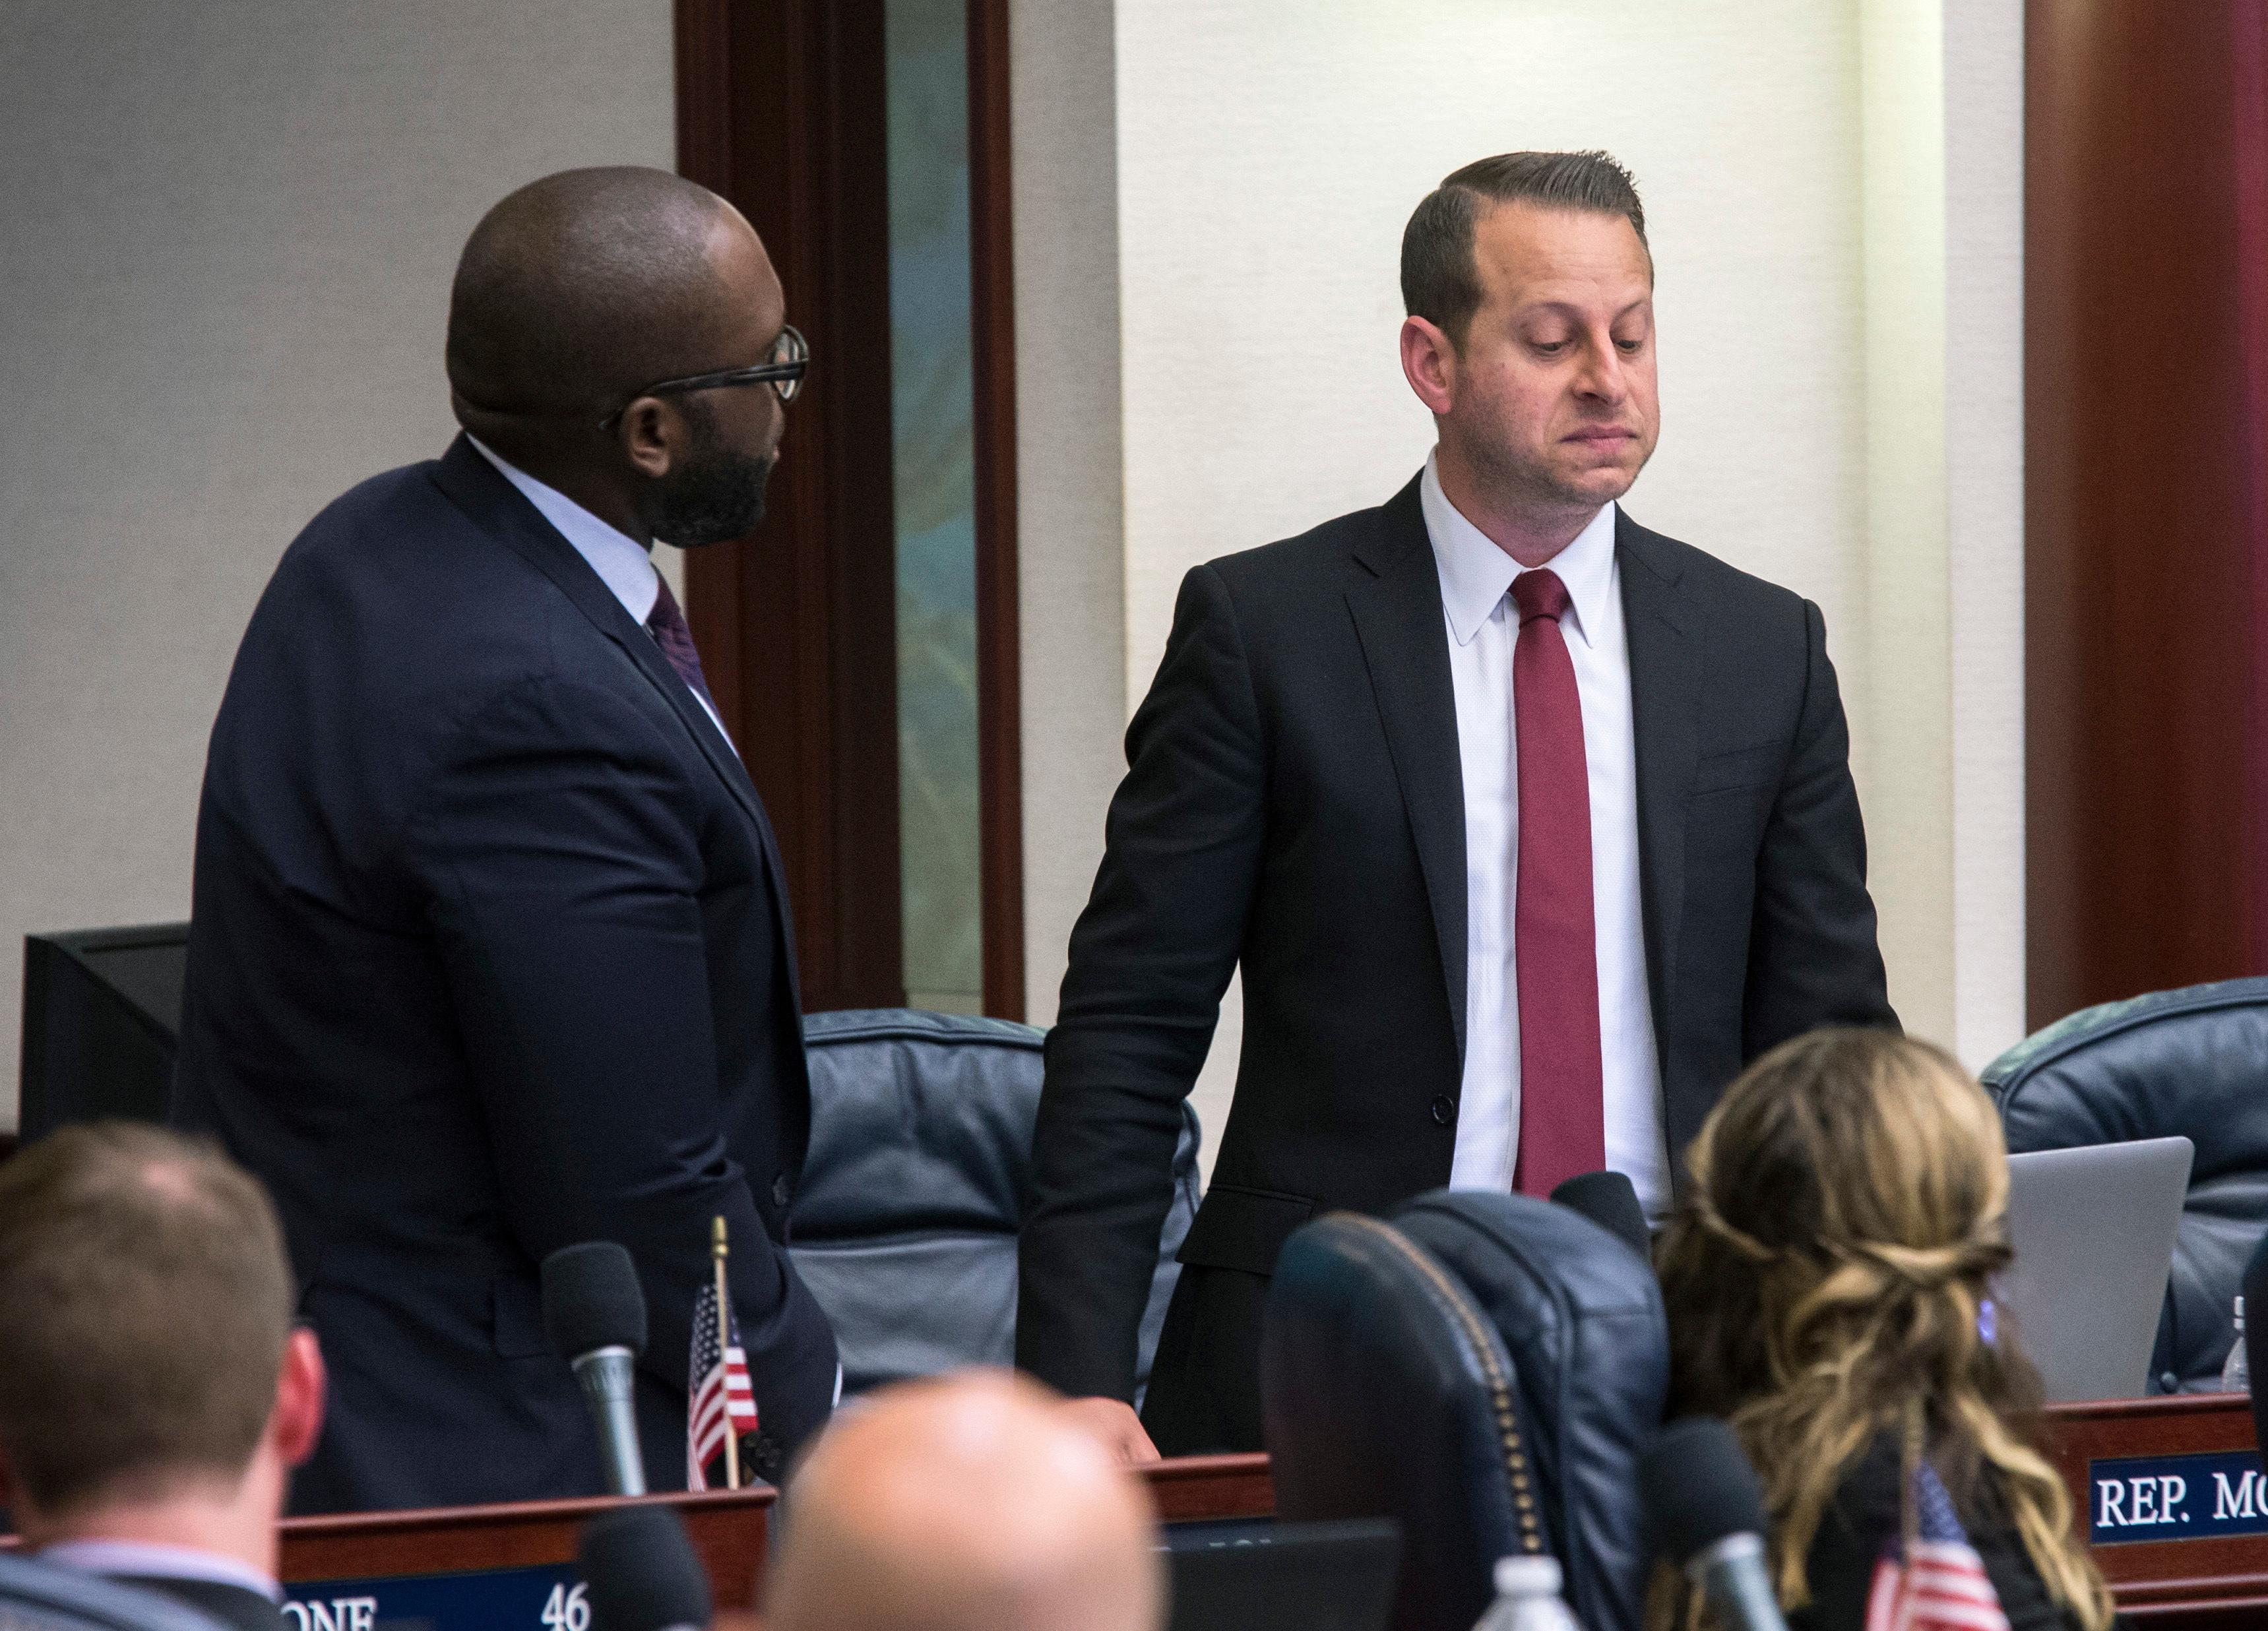 Florida Rep. Jared Moskowitz, right, D-Coral Springs, regains his composure during his debate of the school safety bill as Rep. Shevrin D. Jones, D-West Park, looks on just prior to the vote at the Florida Capital in Tallahassee, Fla., Wednesday March 7, 2018. (AP Photo/Mark Wallheiser)